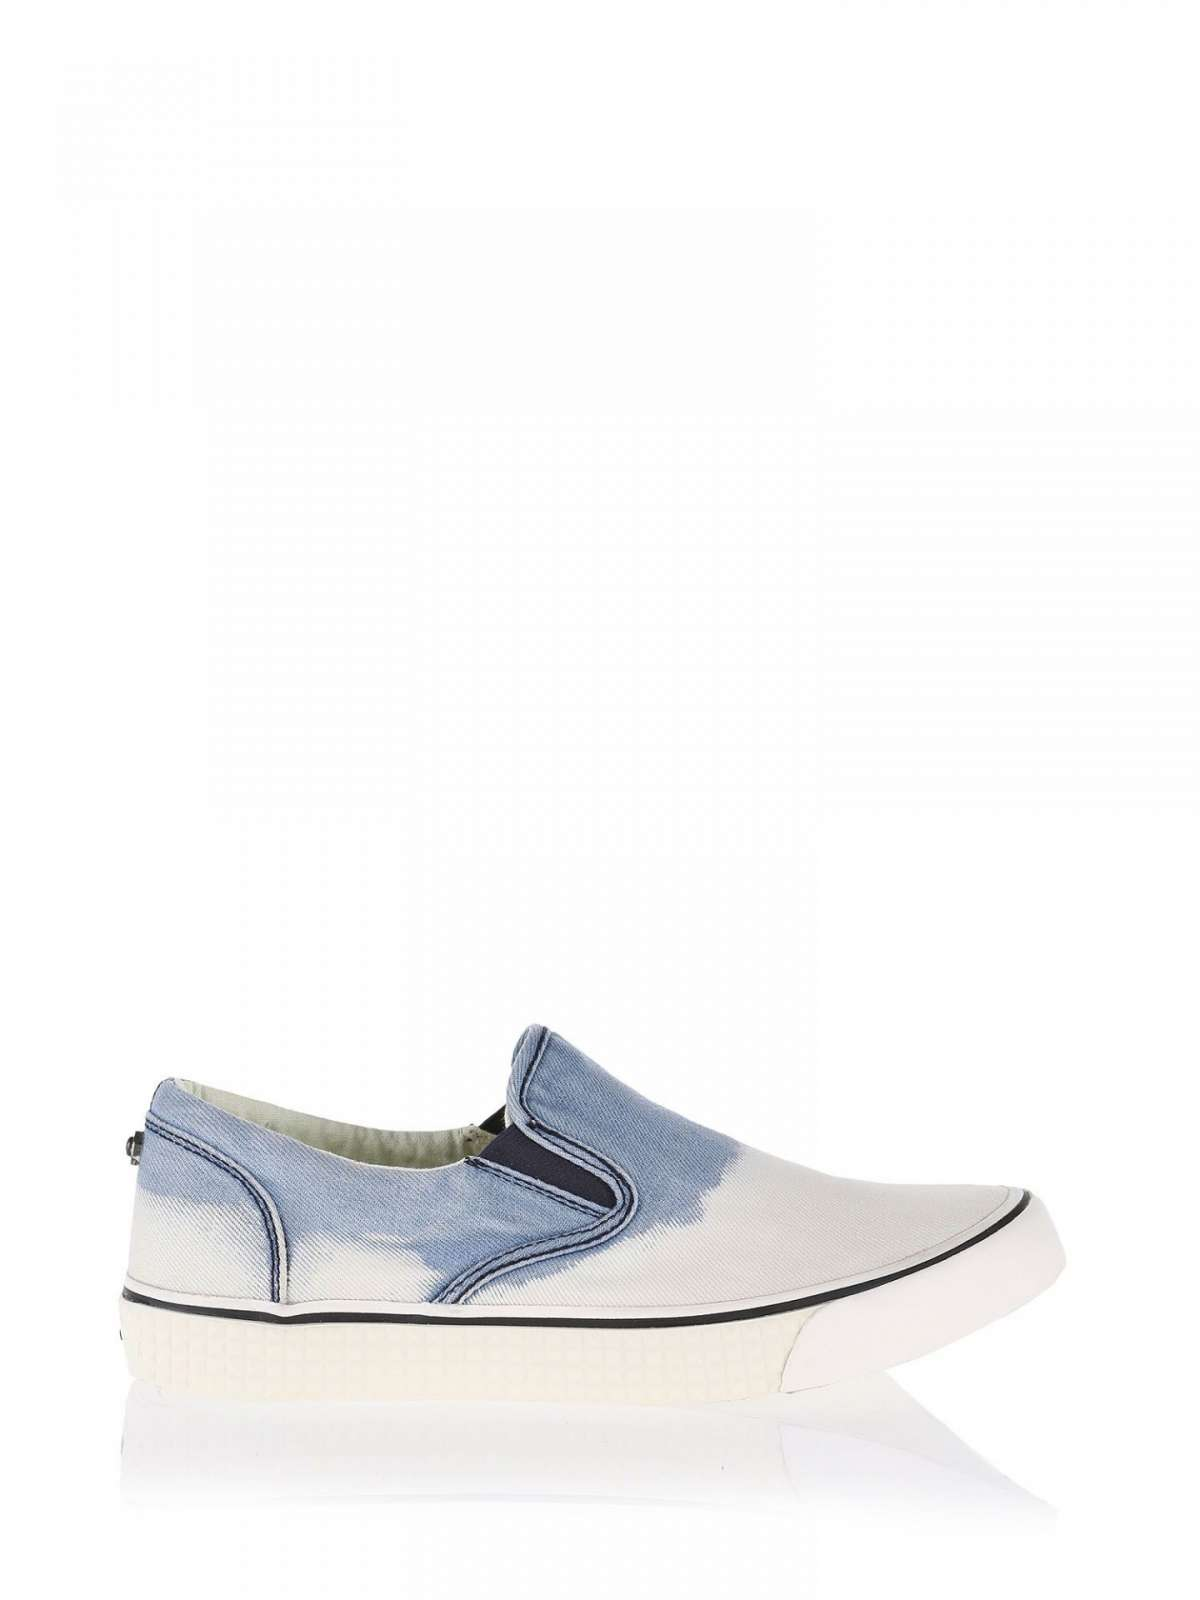 Slip on degradé in denim